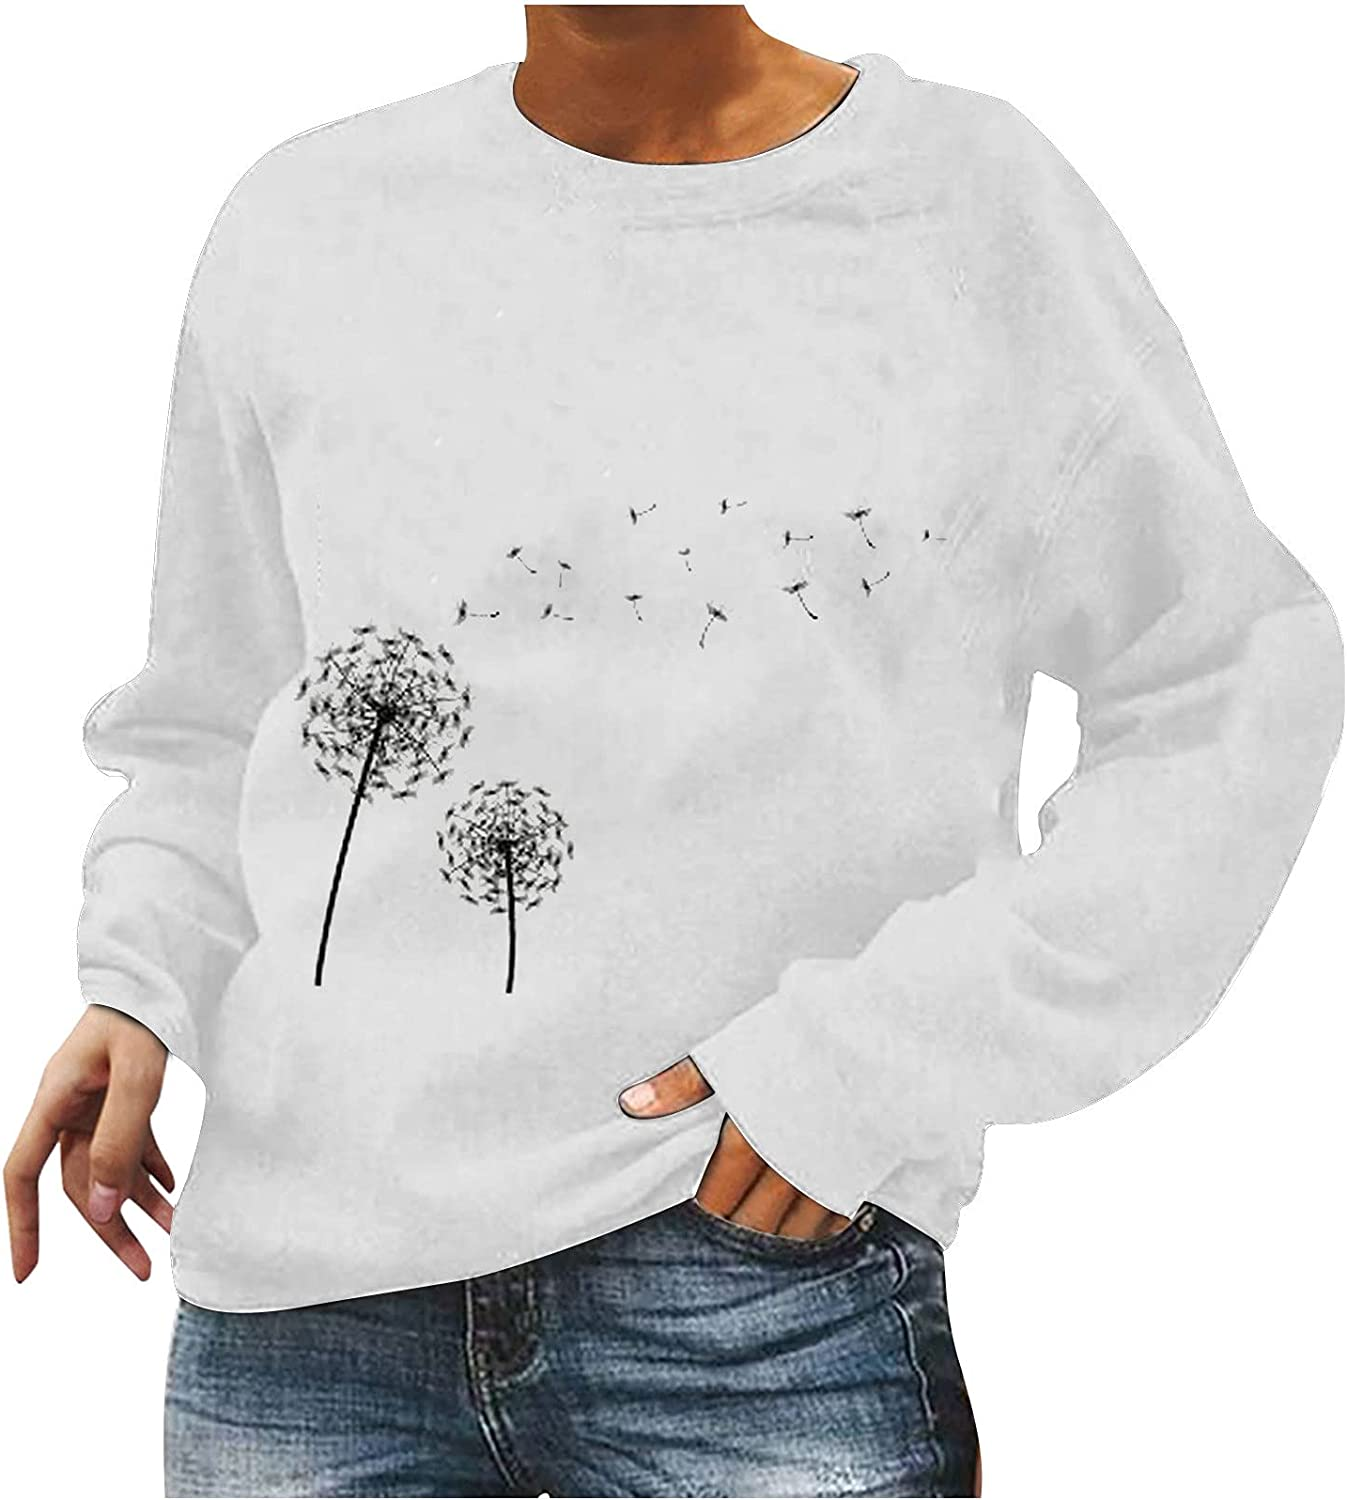 Long Sleeve Shirts for Women Dressy Casual Dandelion Prints Fall Sweaters Loose Fit Crewneck Sweatshirts Aesthetic Top